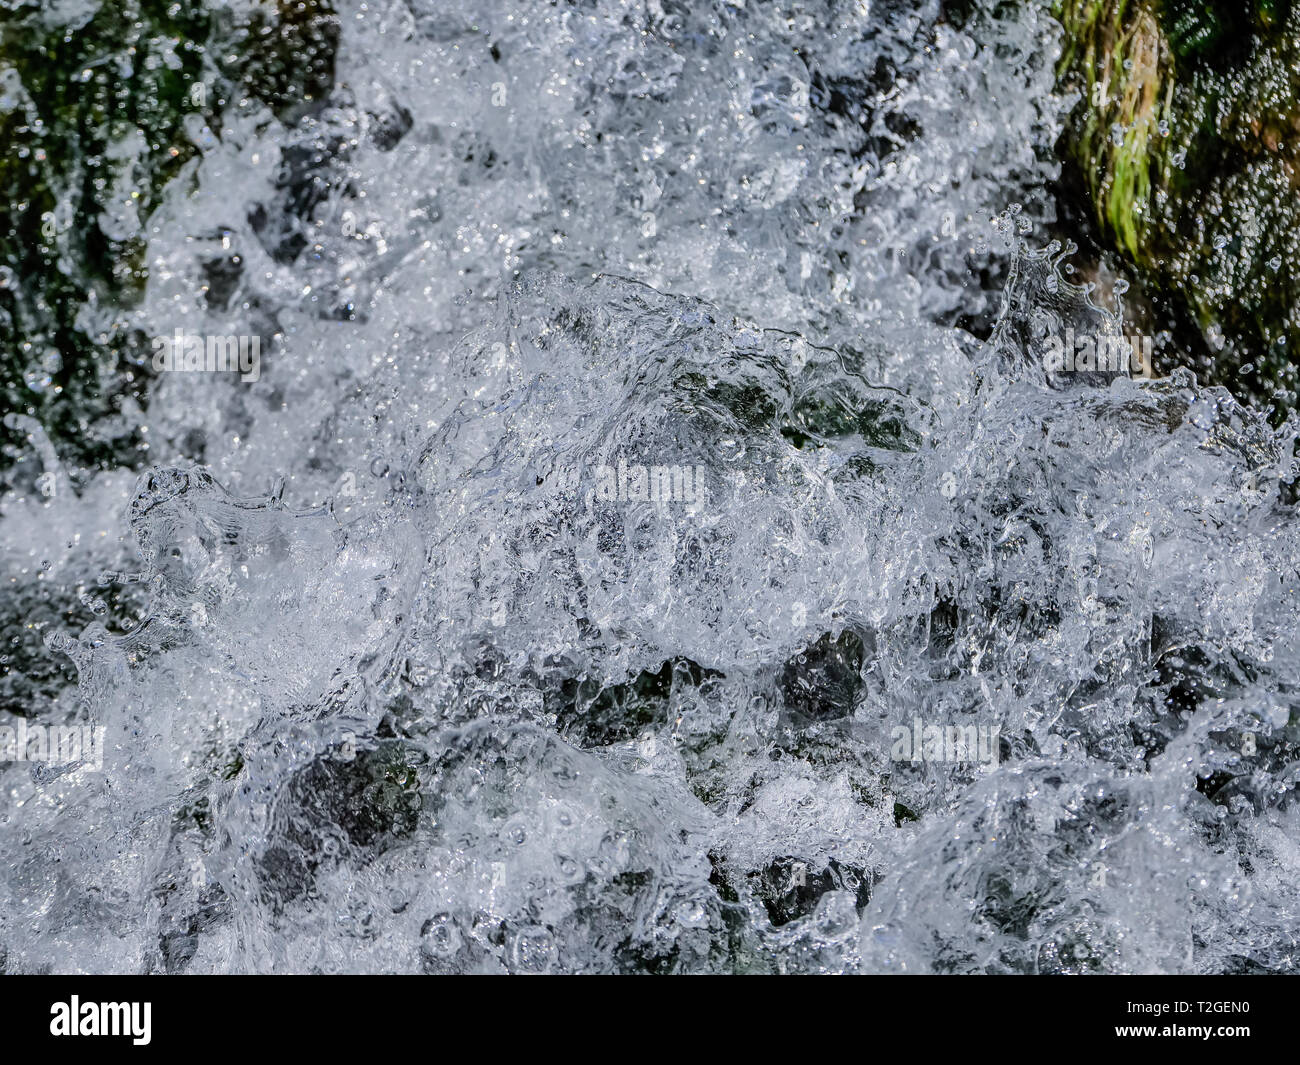 Close up mountain waterfall with clean fresh water. - Stock Image